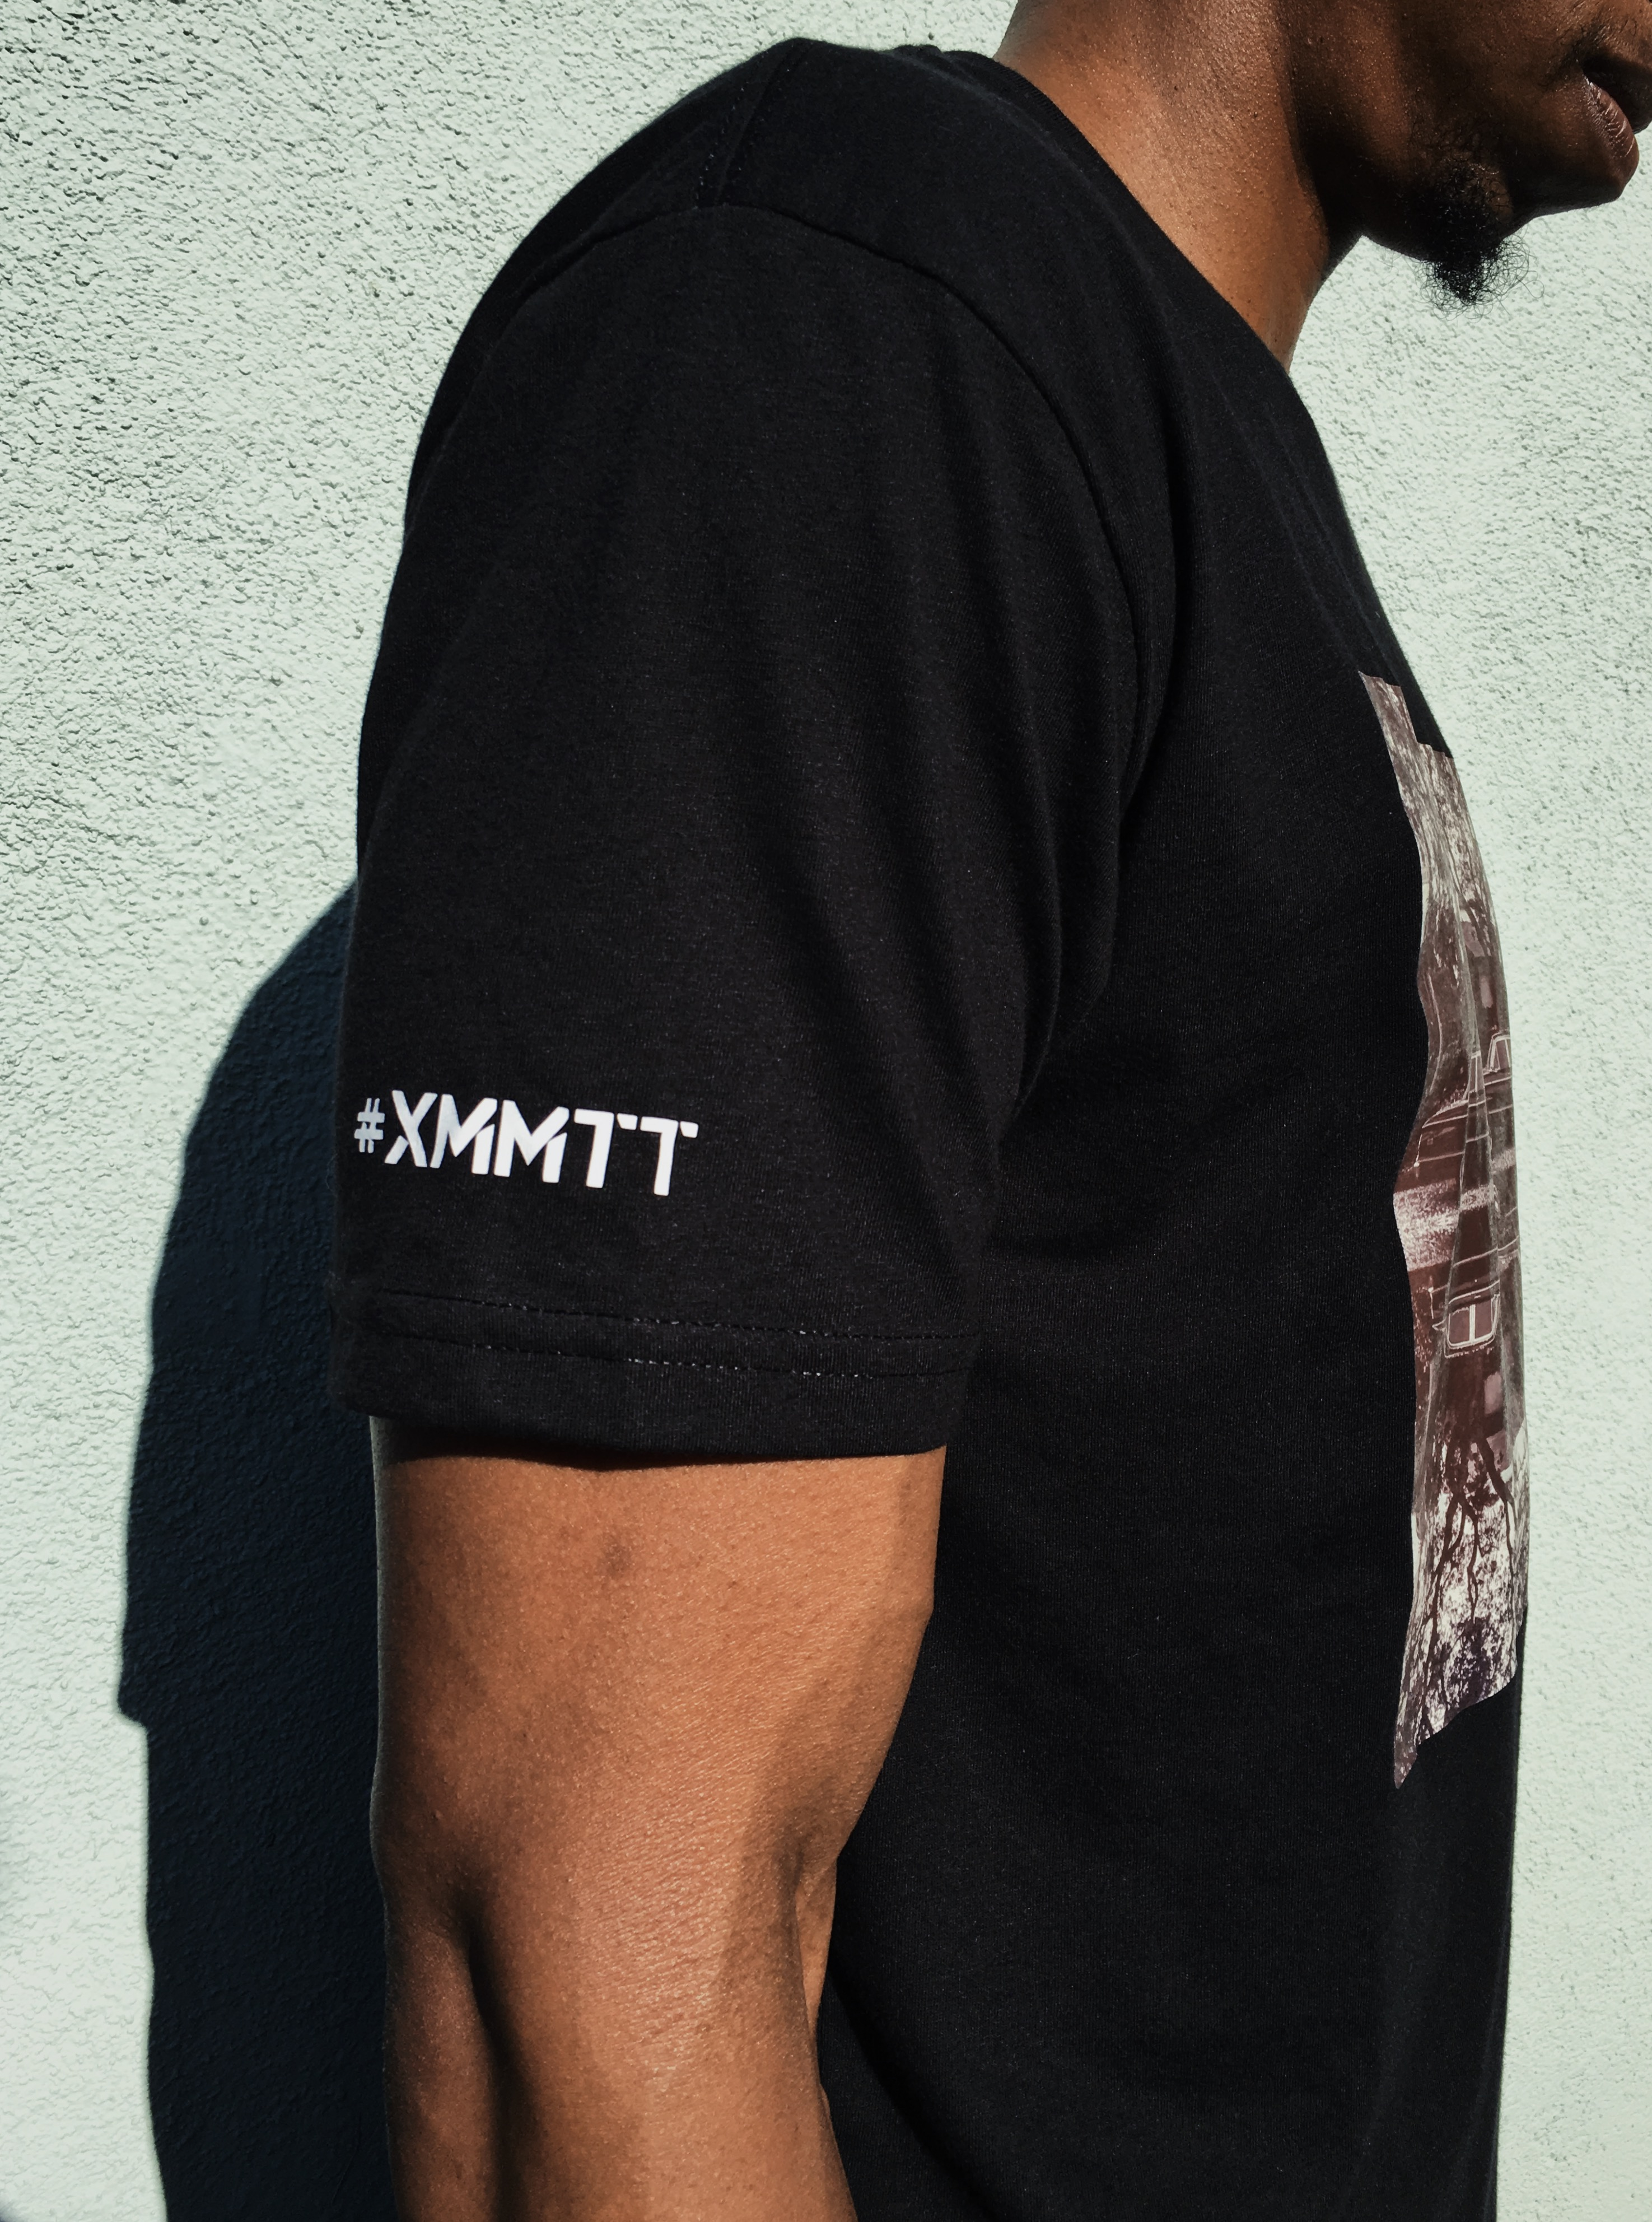 personalized t-shirt-gift idea-xmmtt-gifts for him